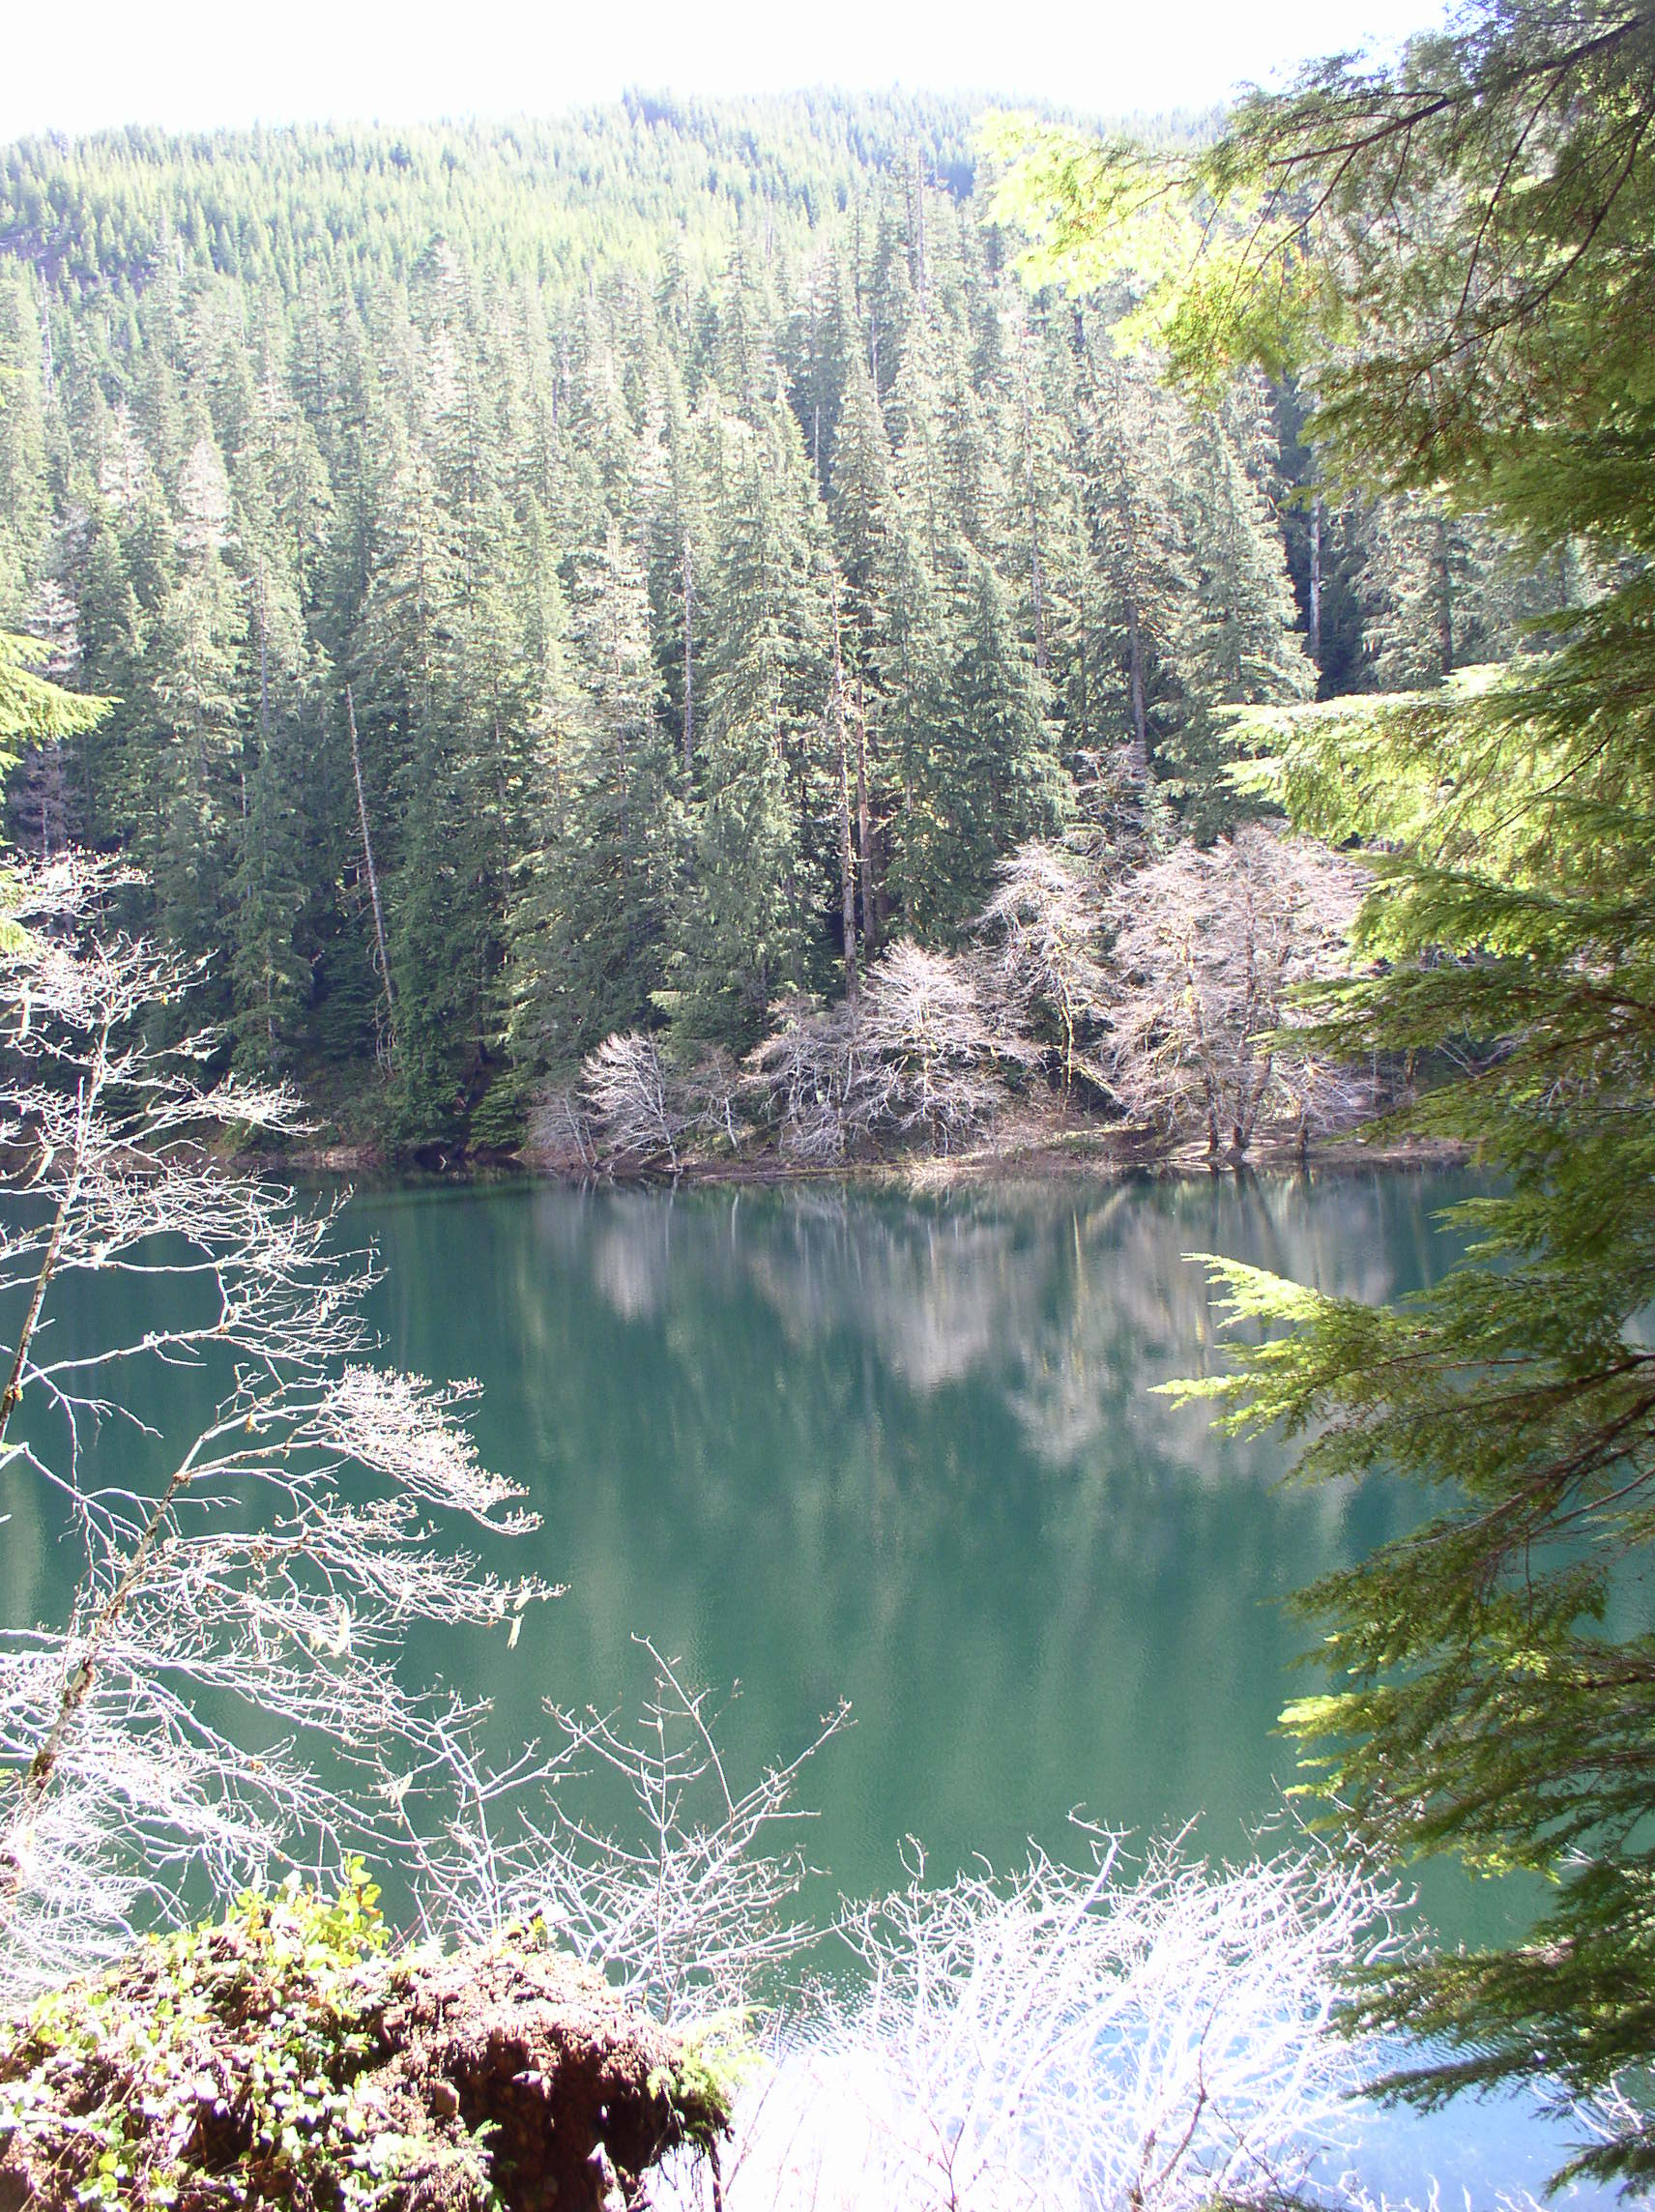 Spider Lake, Washington